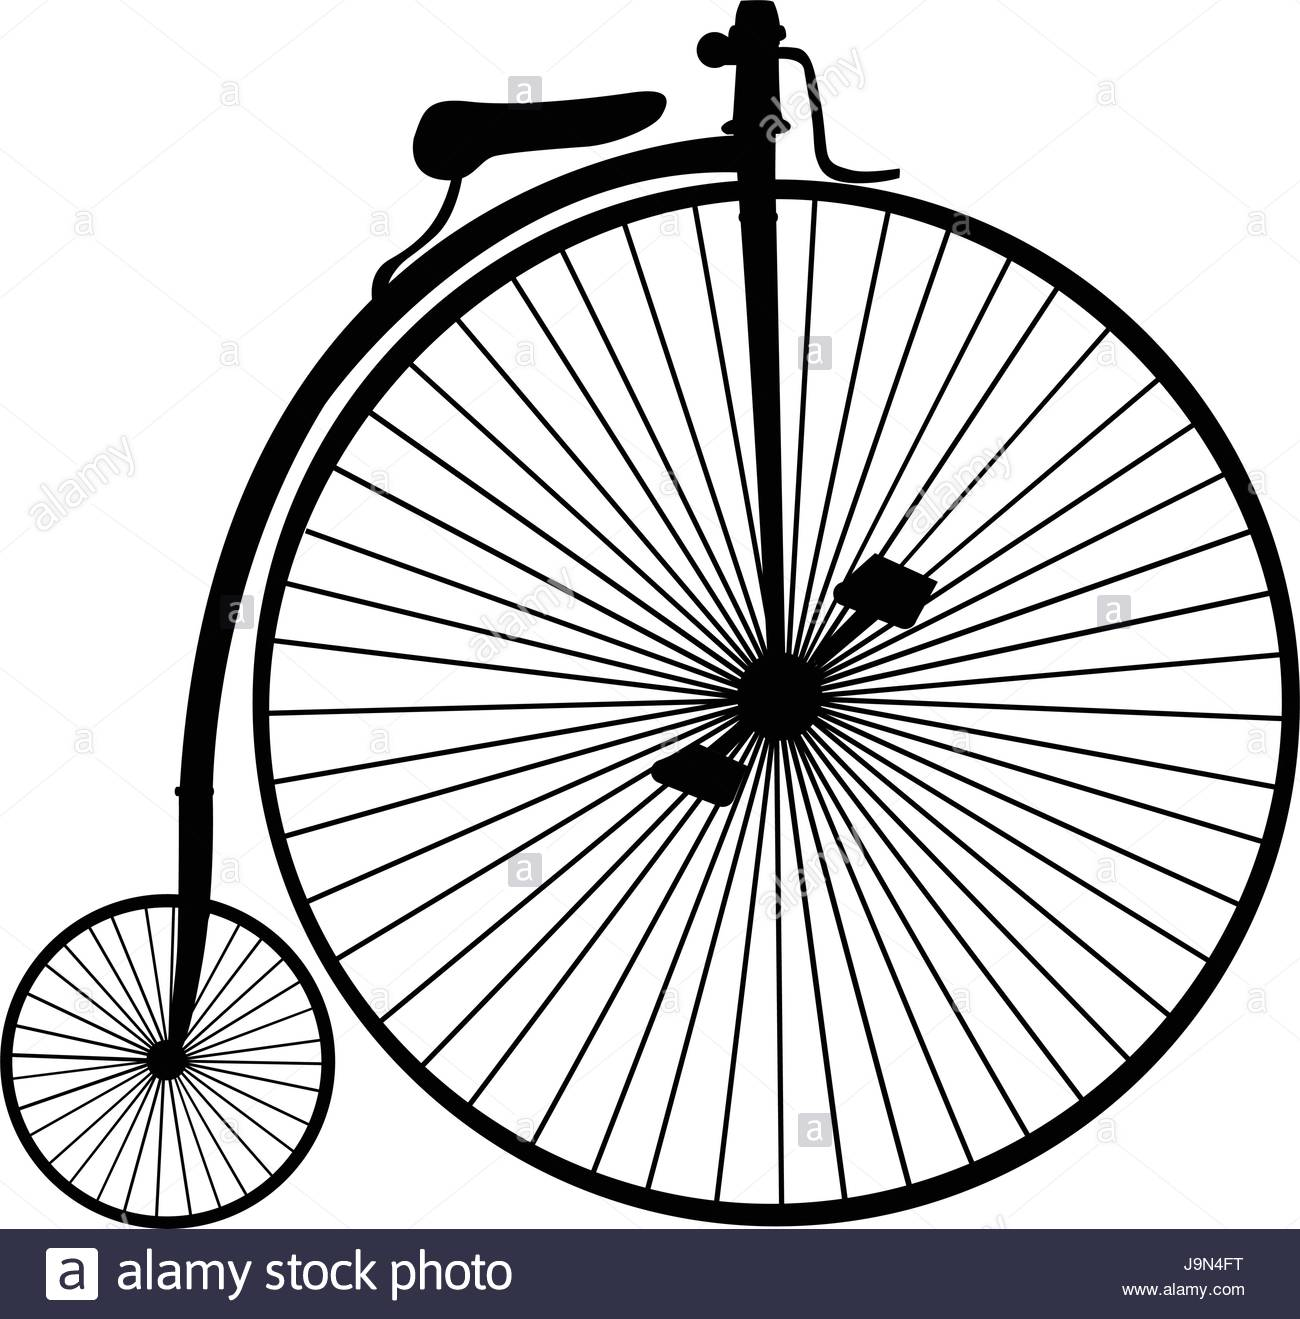 1300x1319 Penny Farthing Or High Wheel Bicycle Silhouette Isolated On White